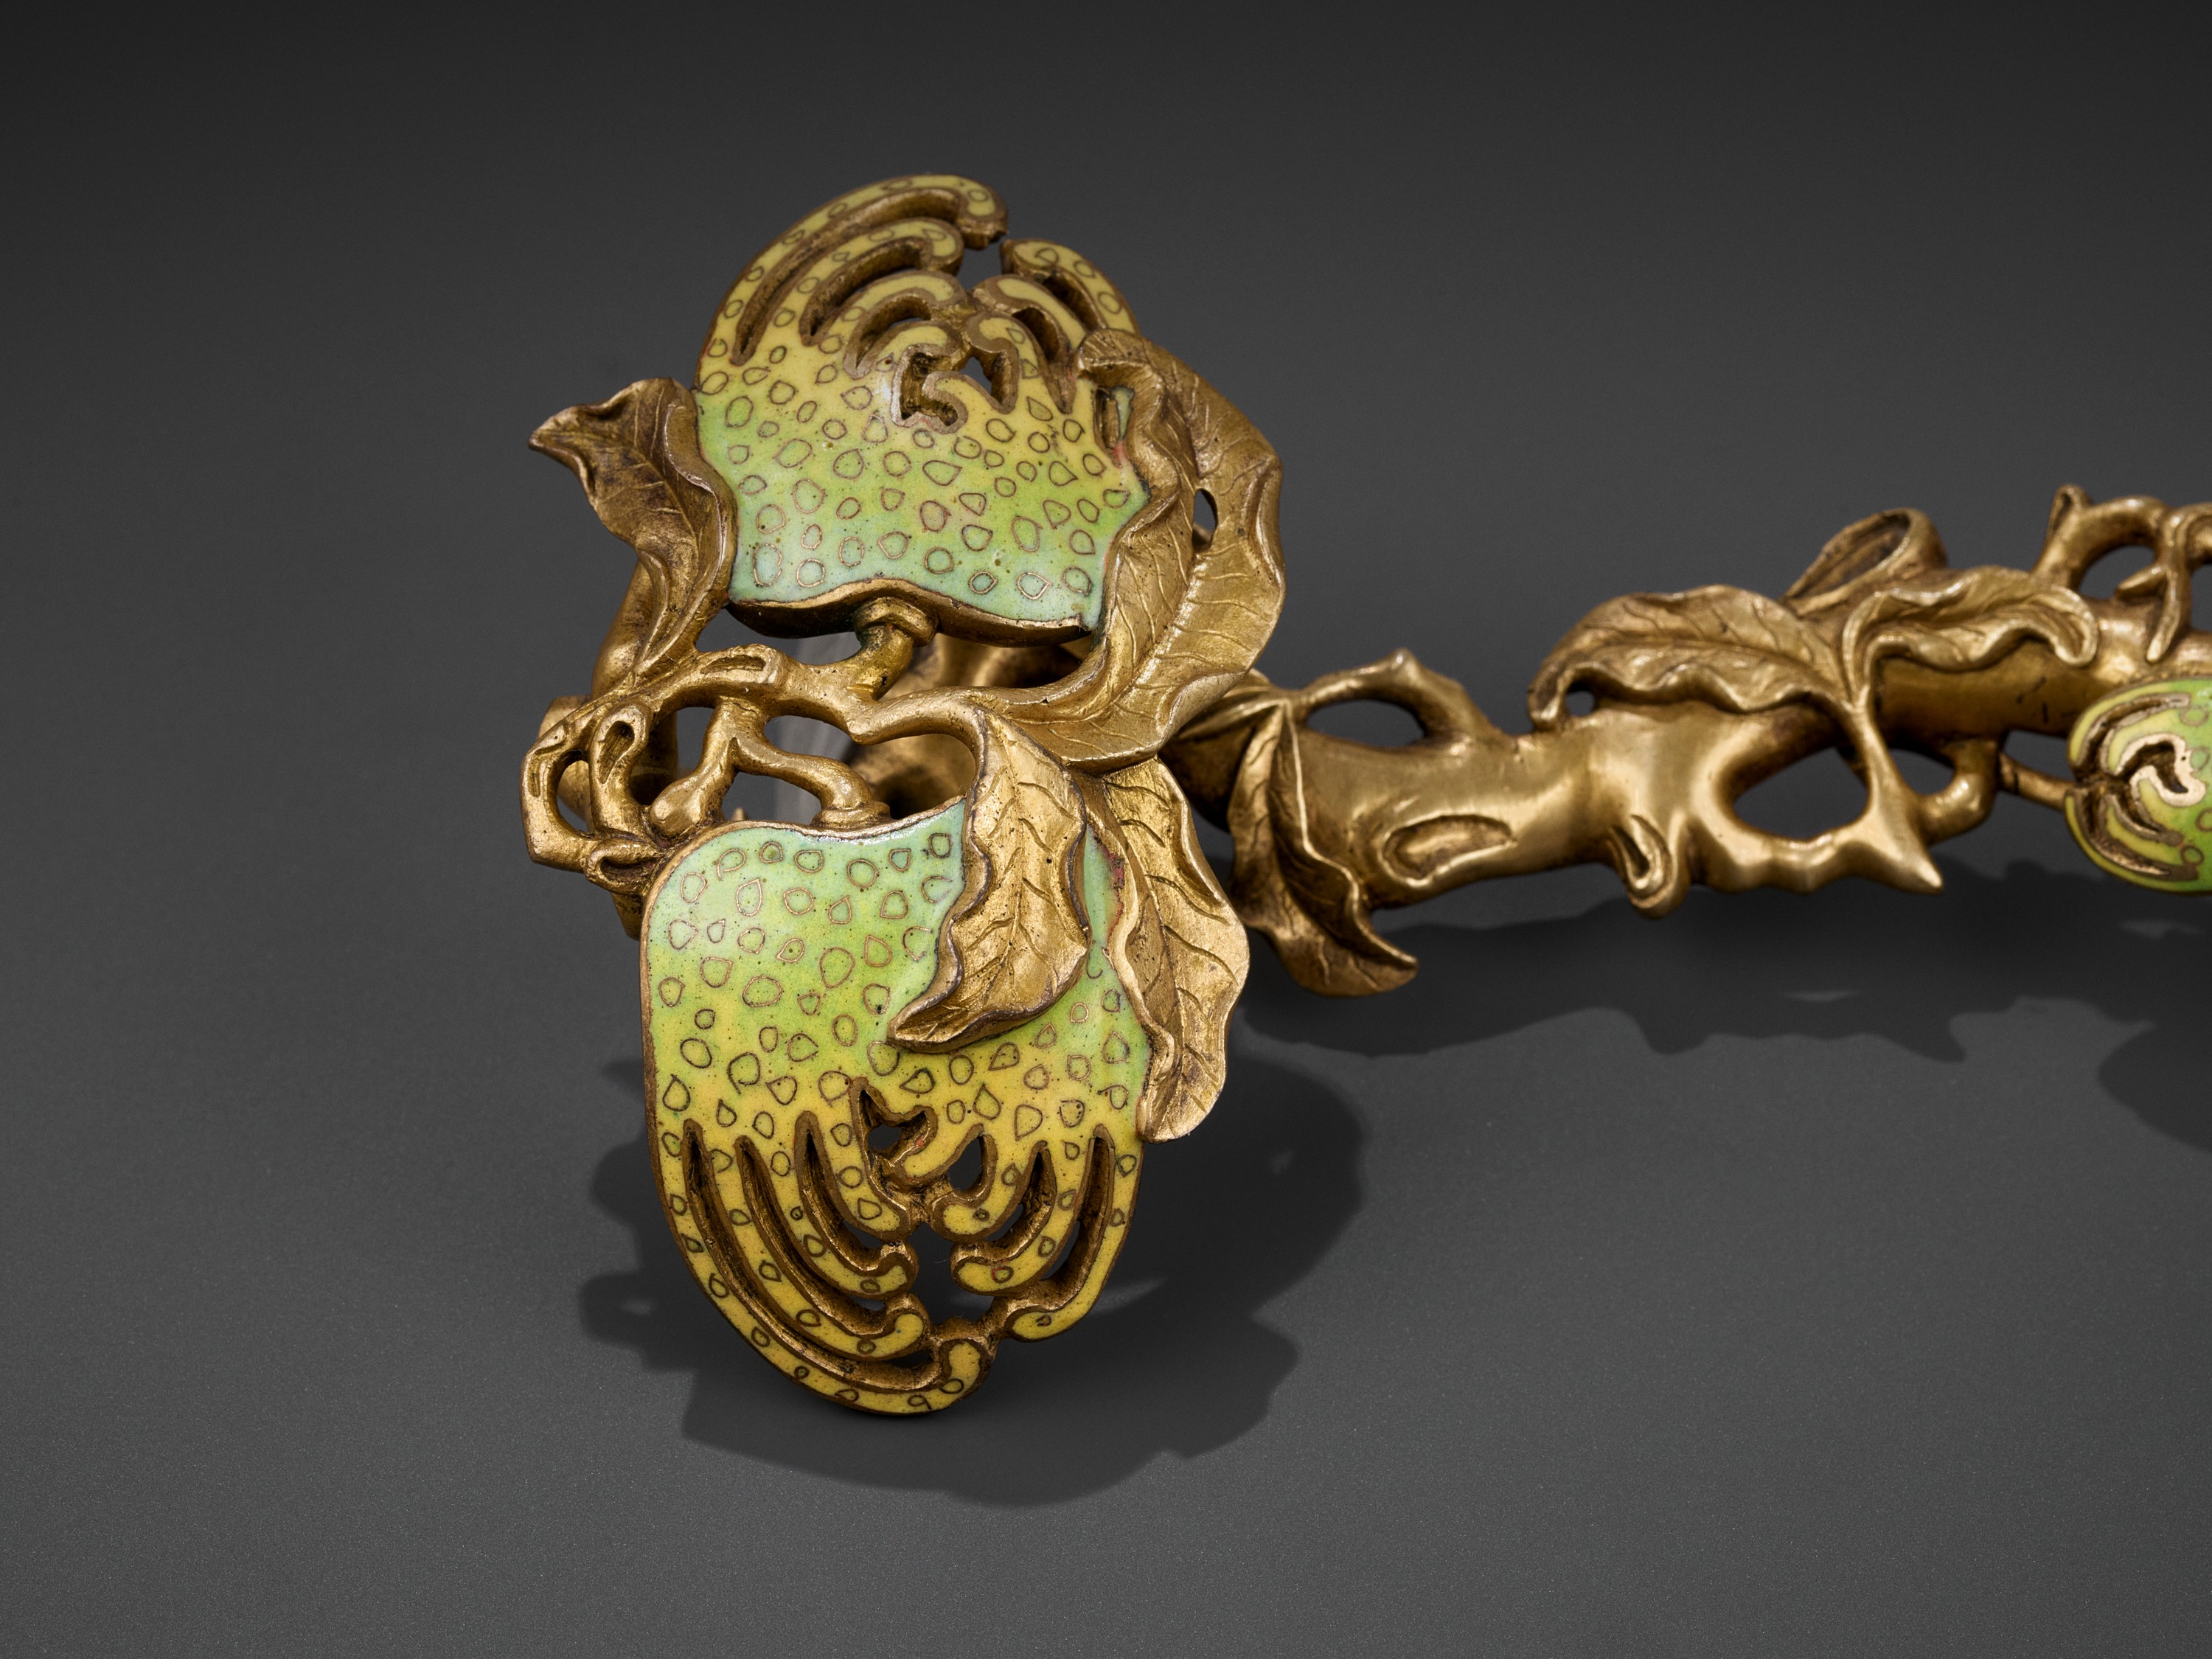 A CHAMPLEVE ENAMEL 'BUDDHA'S HAND' RUYI SCEPTER, QING DYNASTY - Image 5 of 11